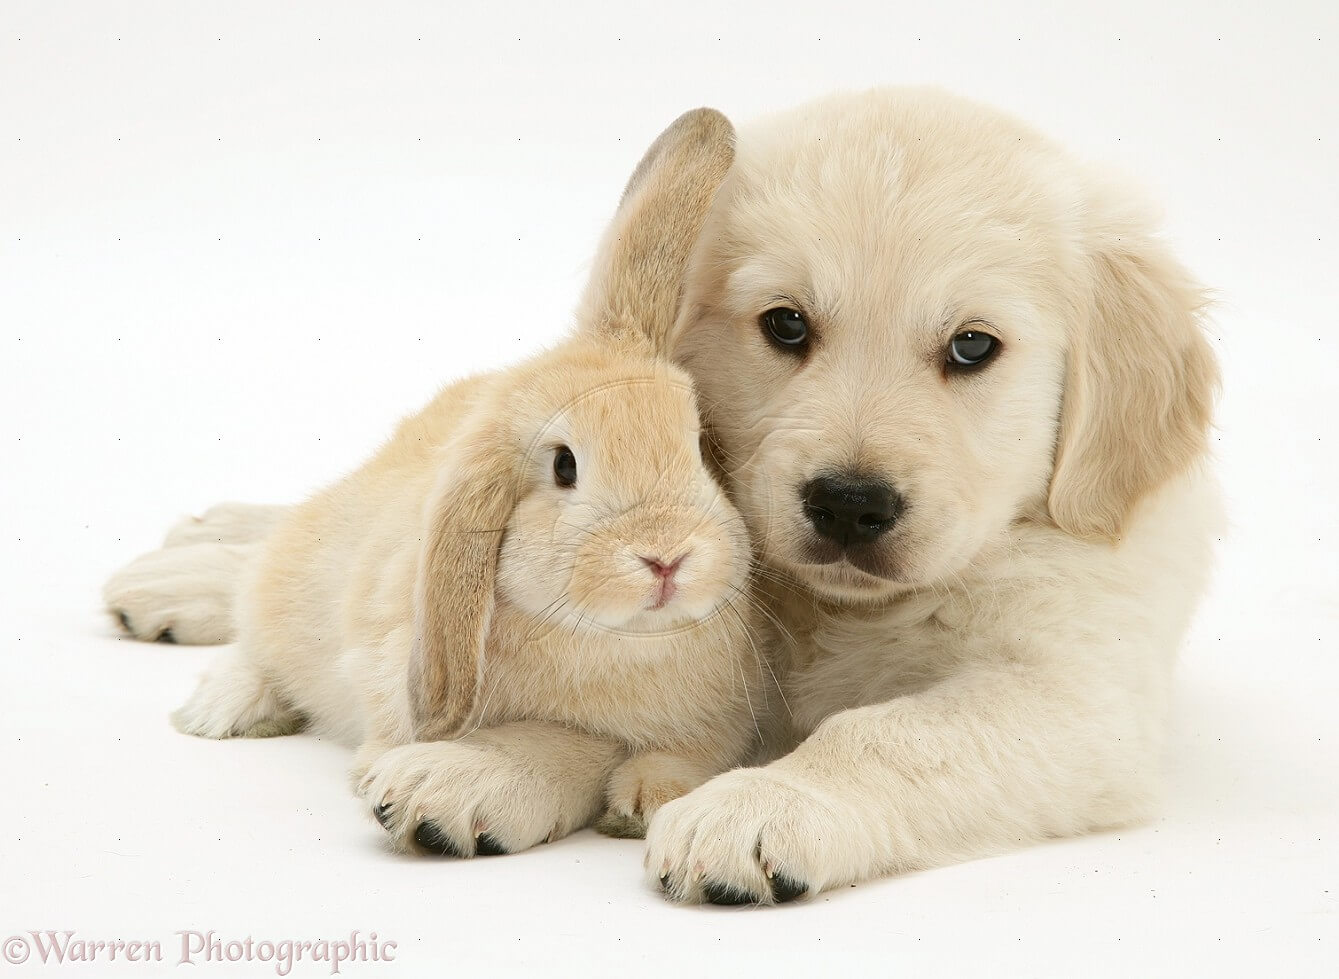 english cream golden retriever puppies with friend rabbit in florida